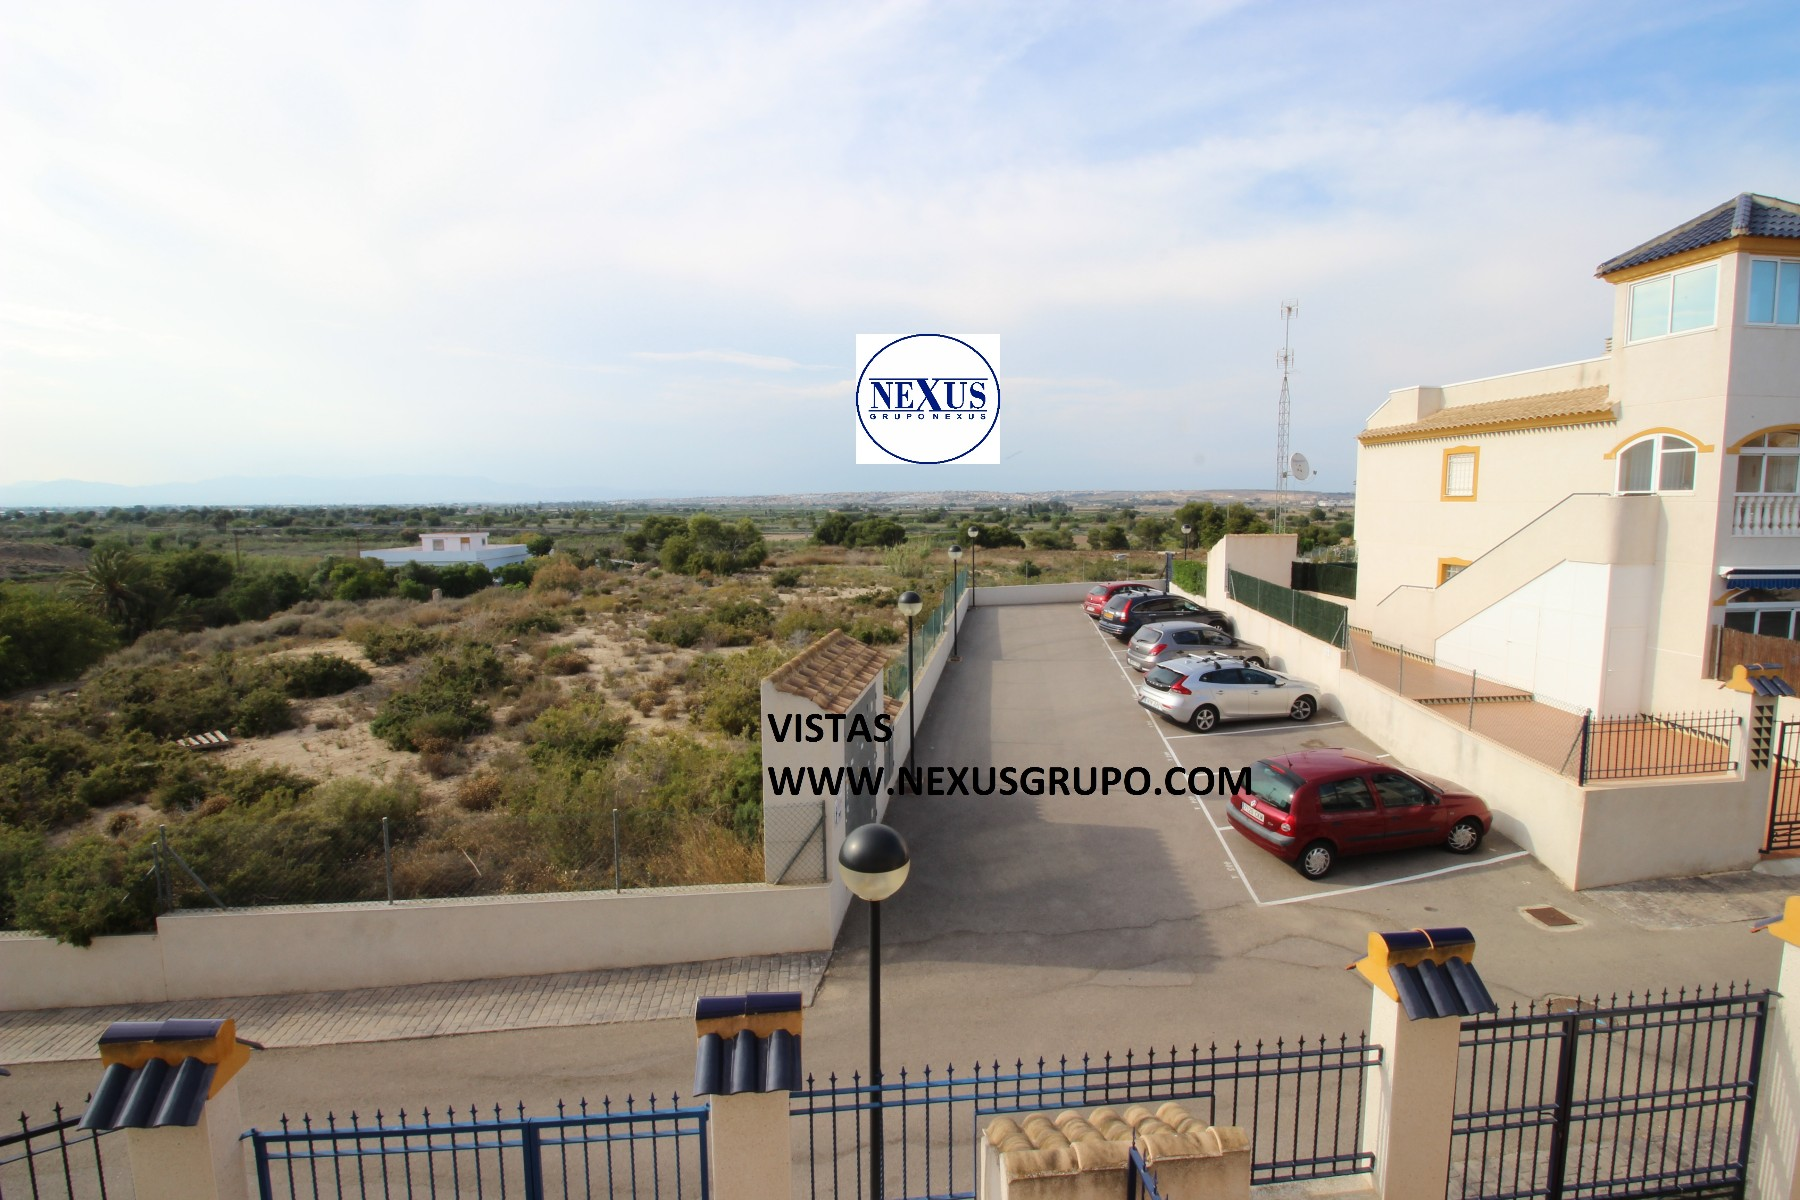 Grupo Nexus Real Estate, Sells, Bungalow top floor in Nexus Grupo